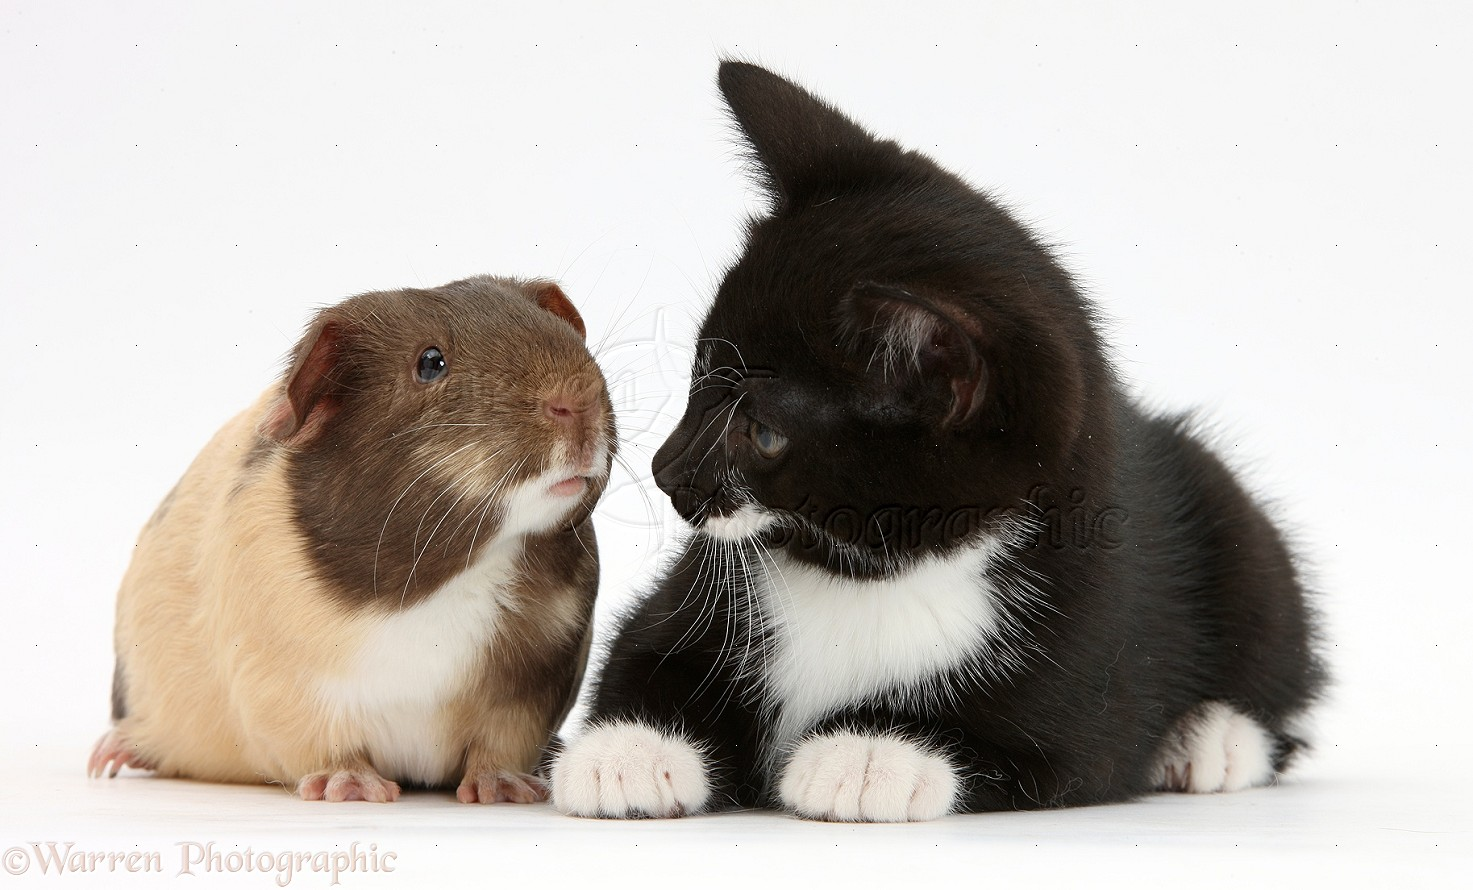 housing adult male guinea pigs together